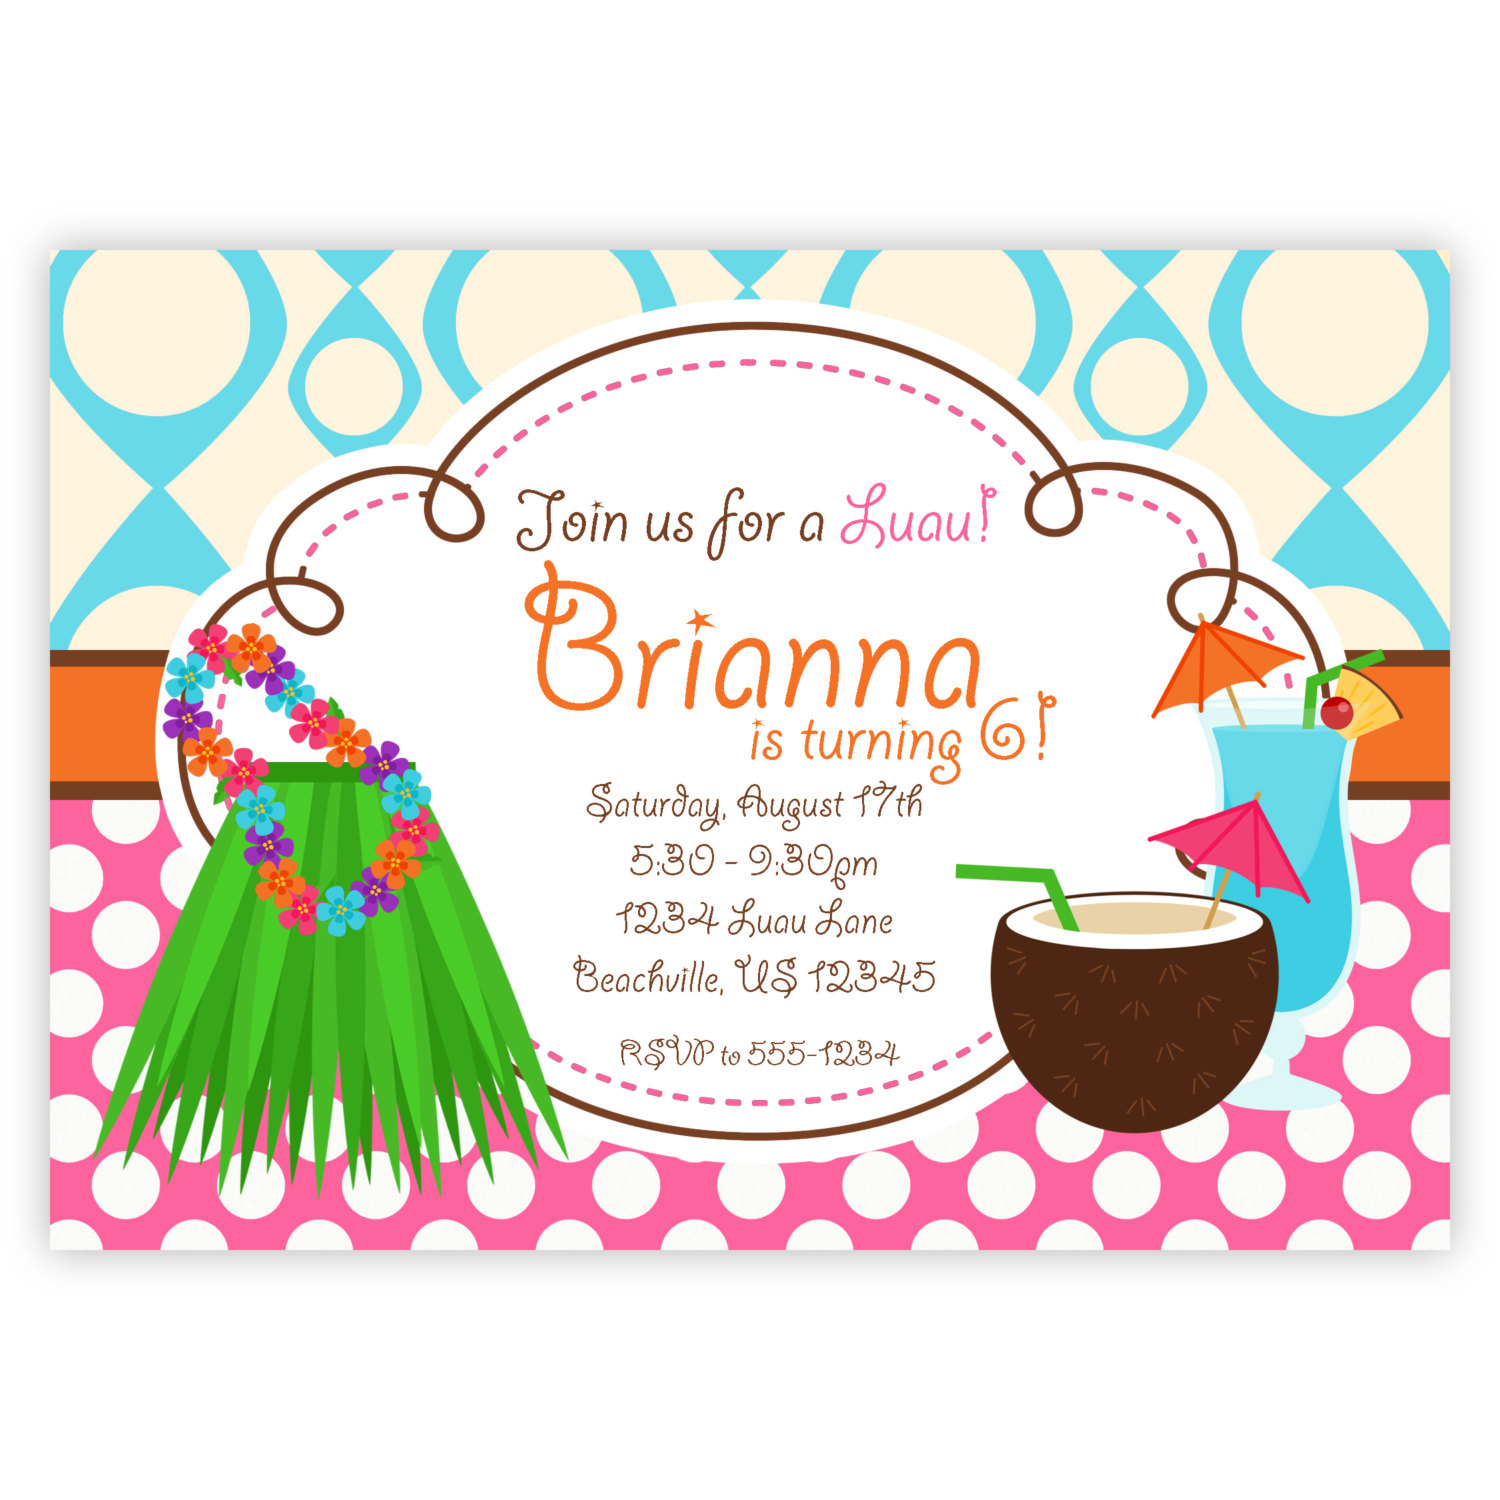 Party Invitation Free is luxury invitations example